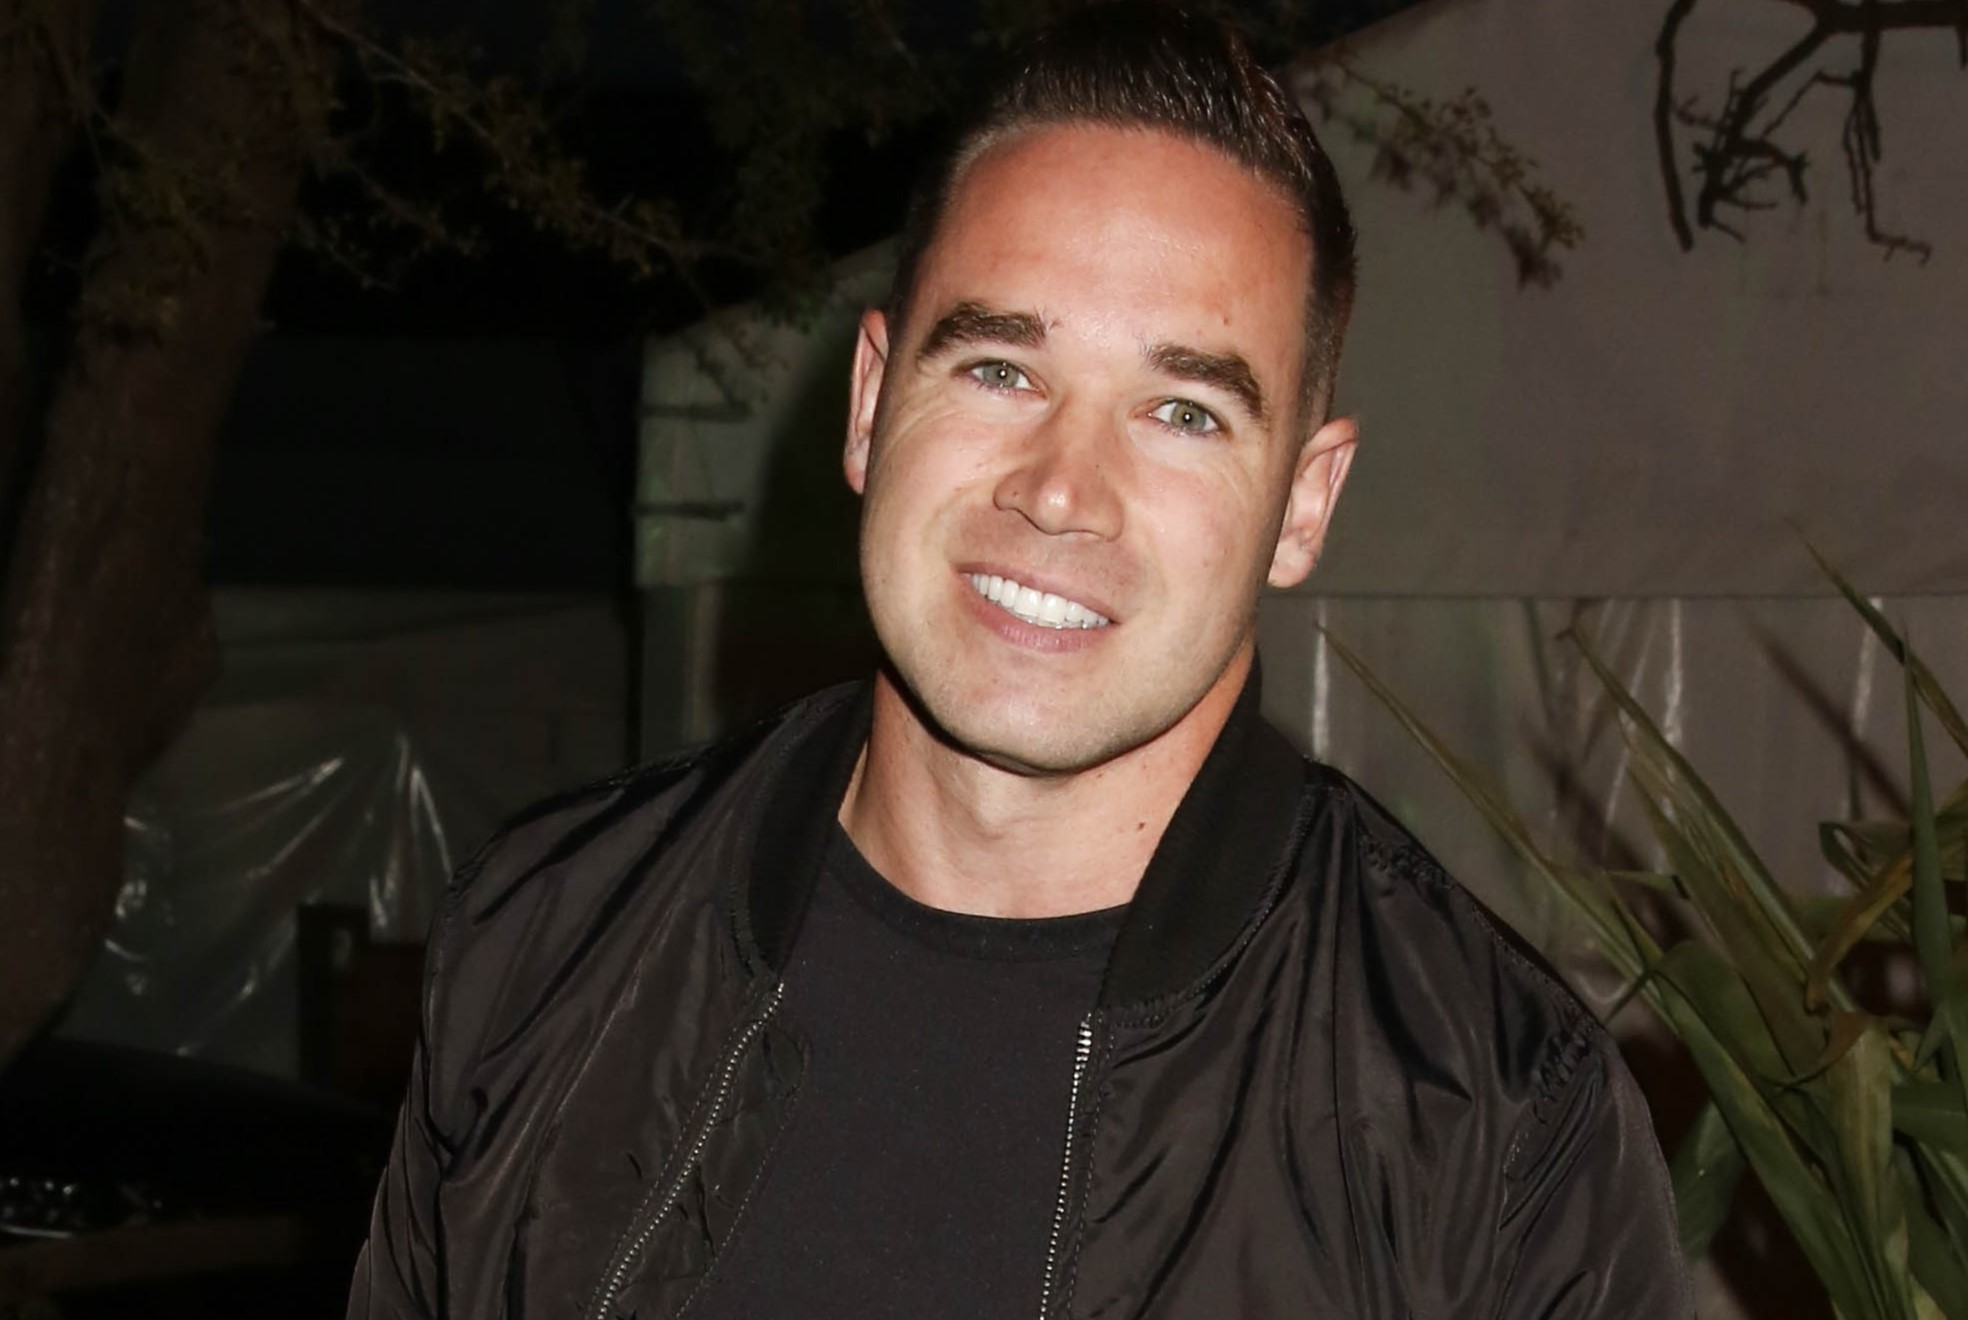 Katie Price's ex Kieran Hayler 'in talks to land his own reality show'